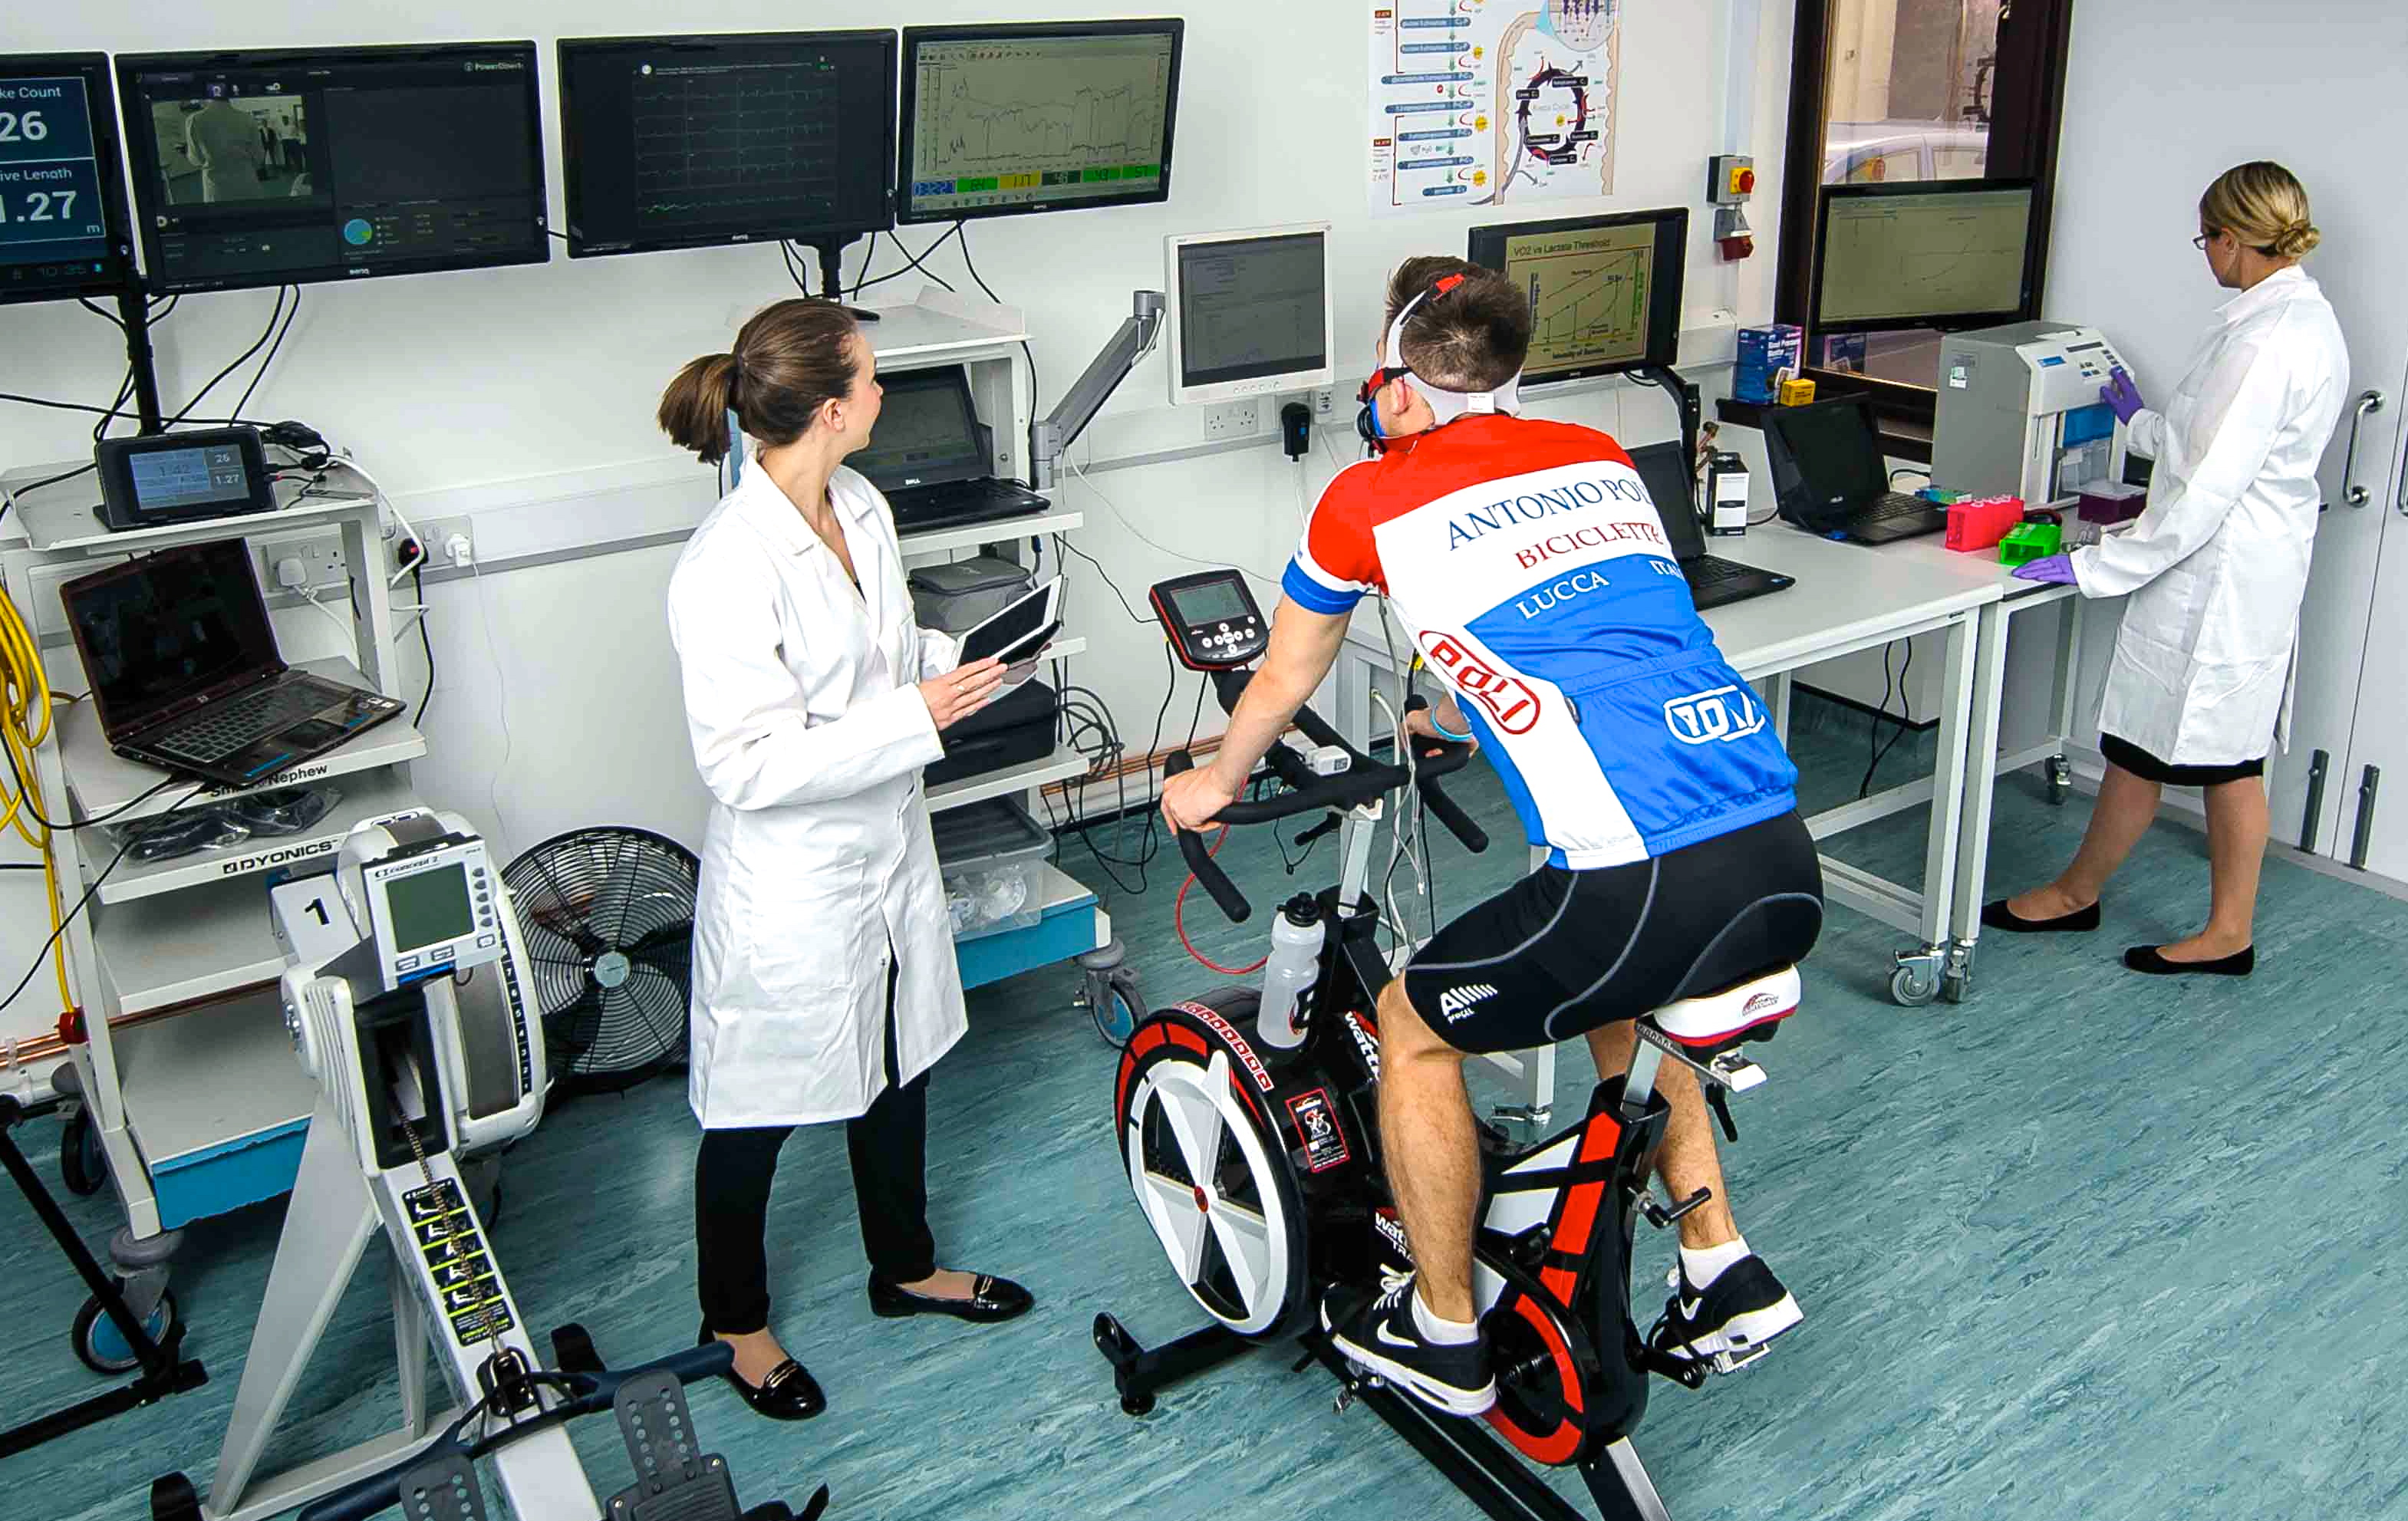 This image shows a young man working on an exercise bike in a laboratory and being monitored by a scientist.